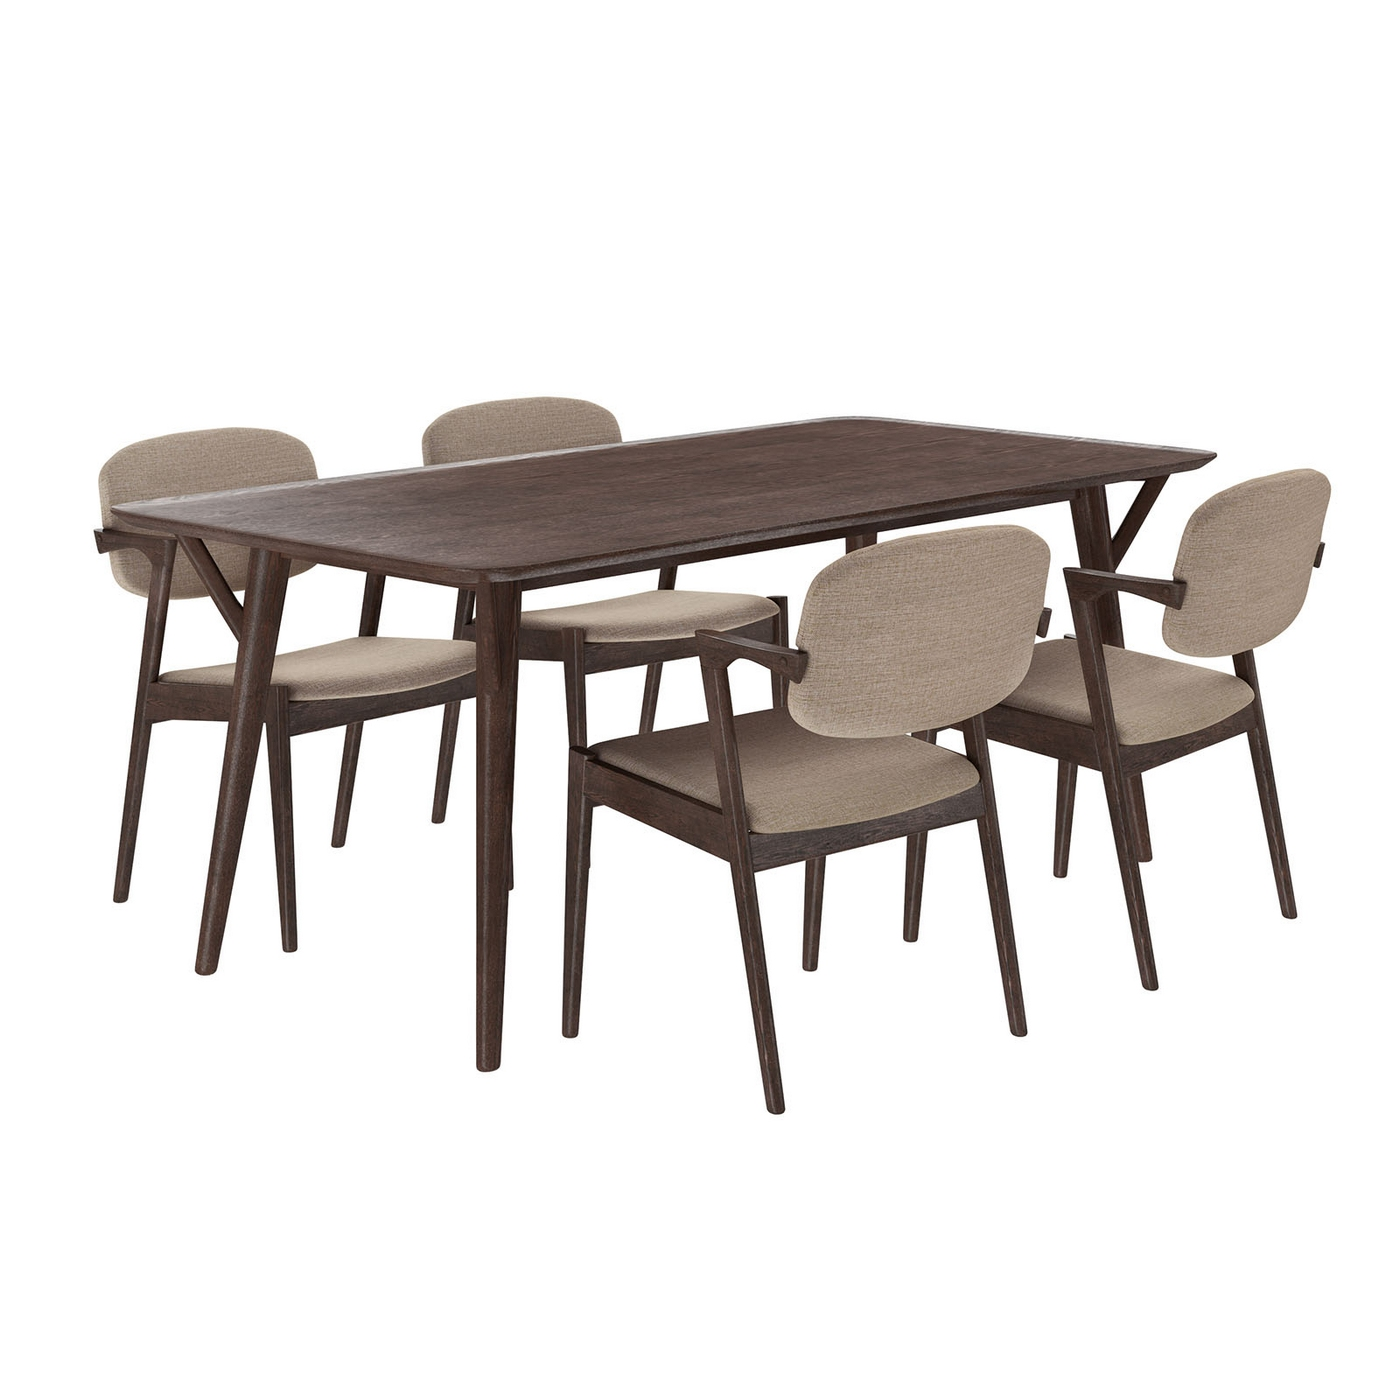 Modern Wooden Dining Room Chairs Mid Century Modern 5pc Wooden Dining Set With Upholstered